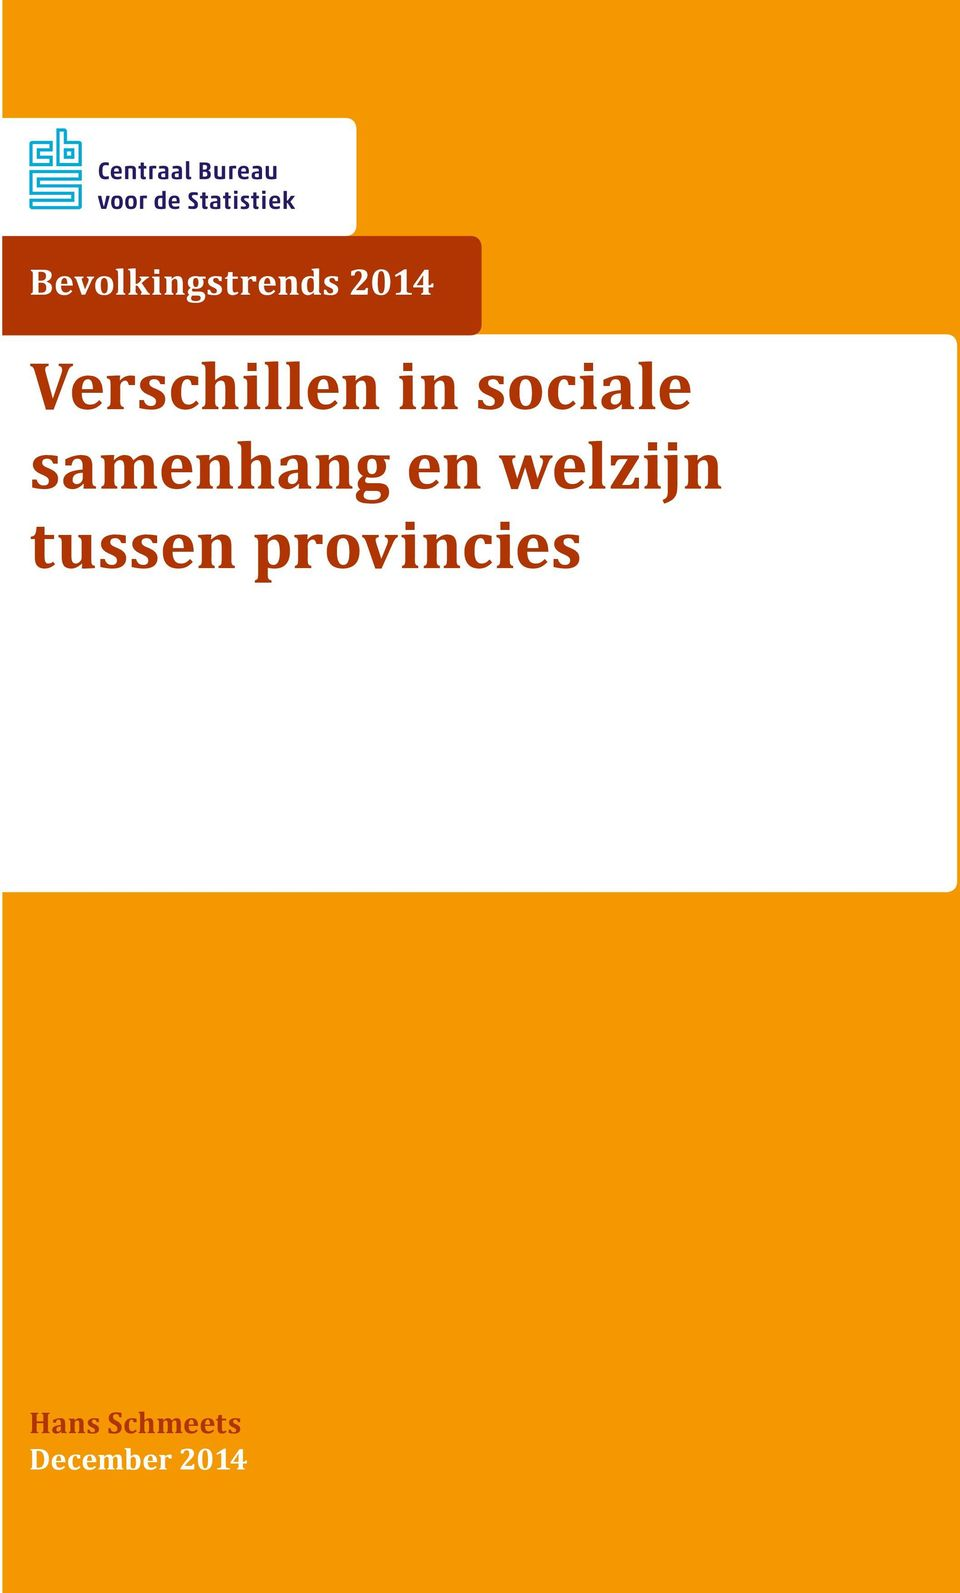 provincies Hans Schmeets December